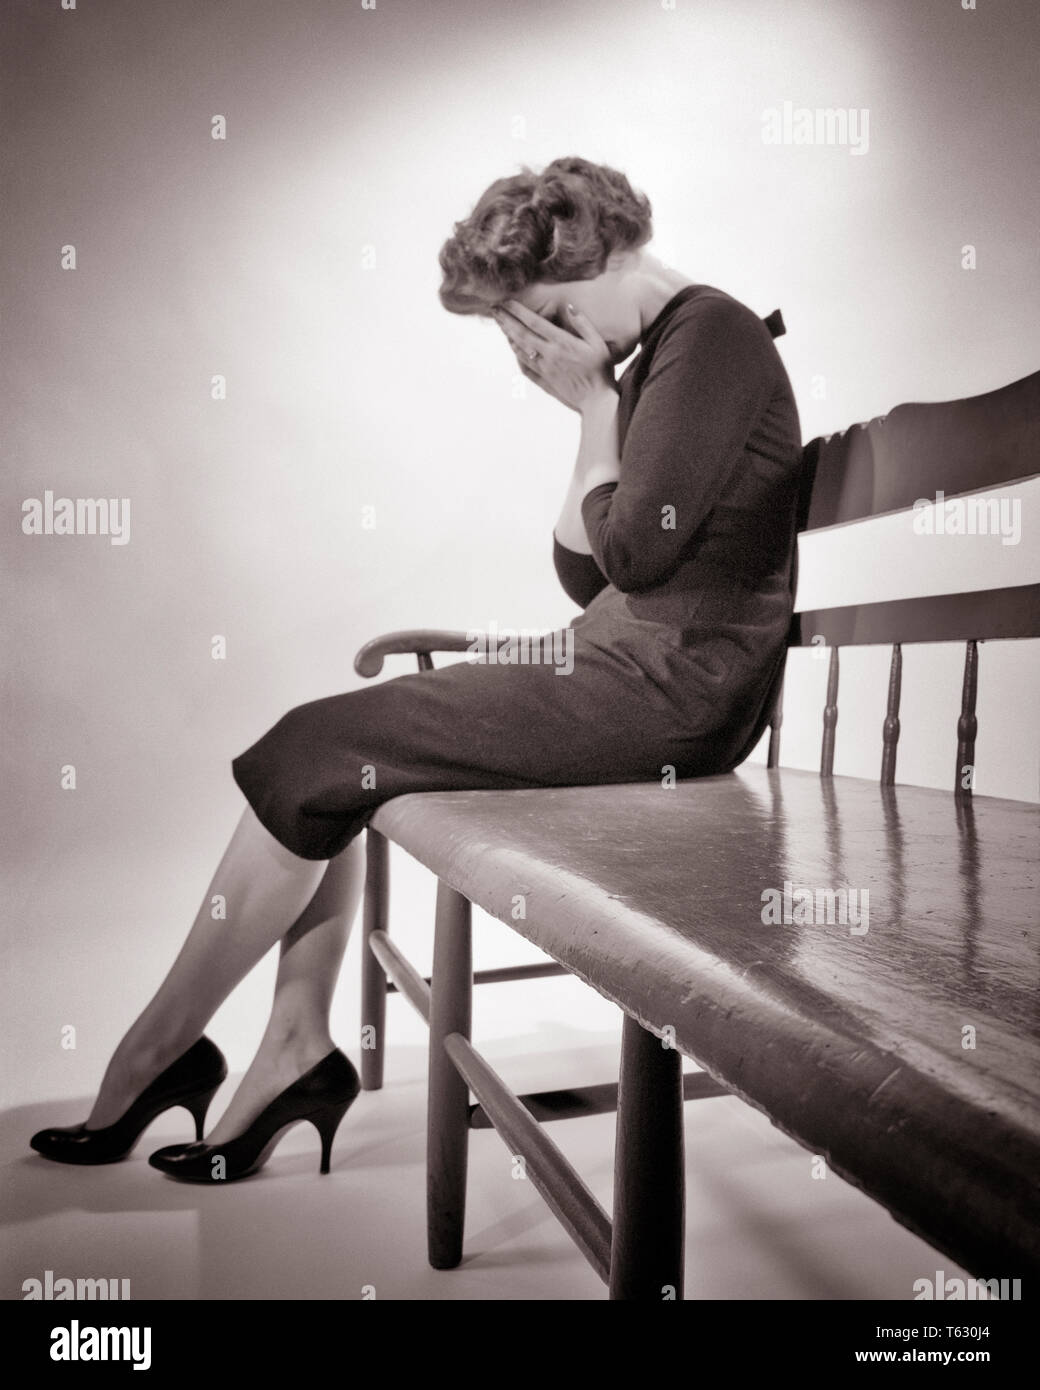 1950s SILHOUETTED DISTRAUGHT WOMAN SITTING ON BENCH CRYING HOLDING HANDS OVER FACE SADNESS DEPRESSION LOSS - s3493 HAR001 HARS LOW ANGLE POWERFUL MOOD SORROW EMBARRASSED GRIEVING CONCEPTUAL GLUM FAILURE MID-ADULT MID-ADULT WOMAN MISERABLE BLACK AND WHITE CAUCASIAN ETHNICITY HAR001 OLD FASHIONED - Stock Image